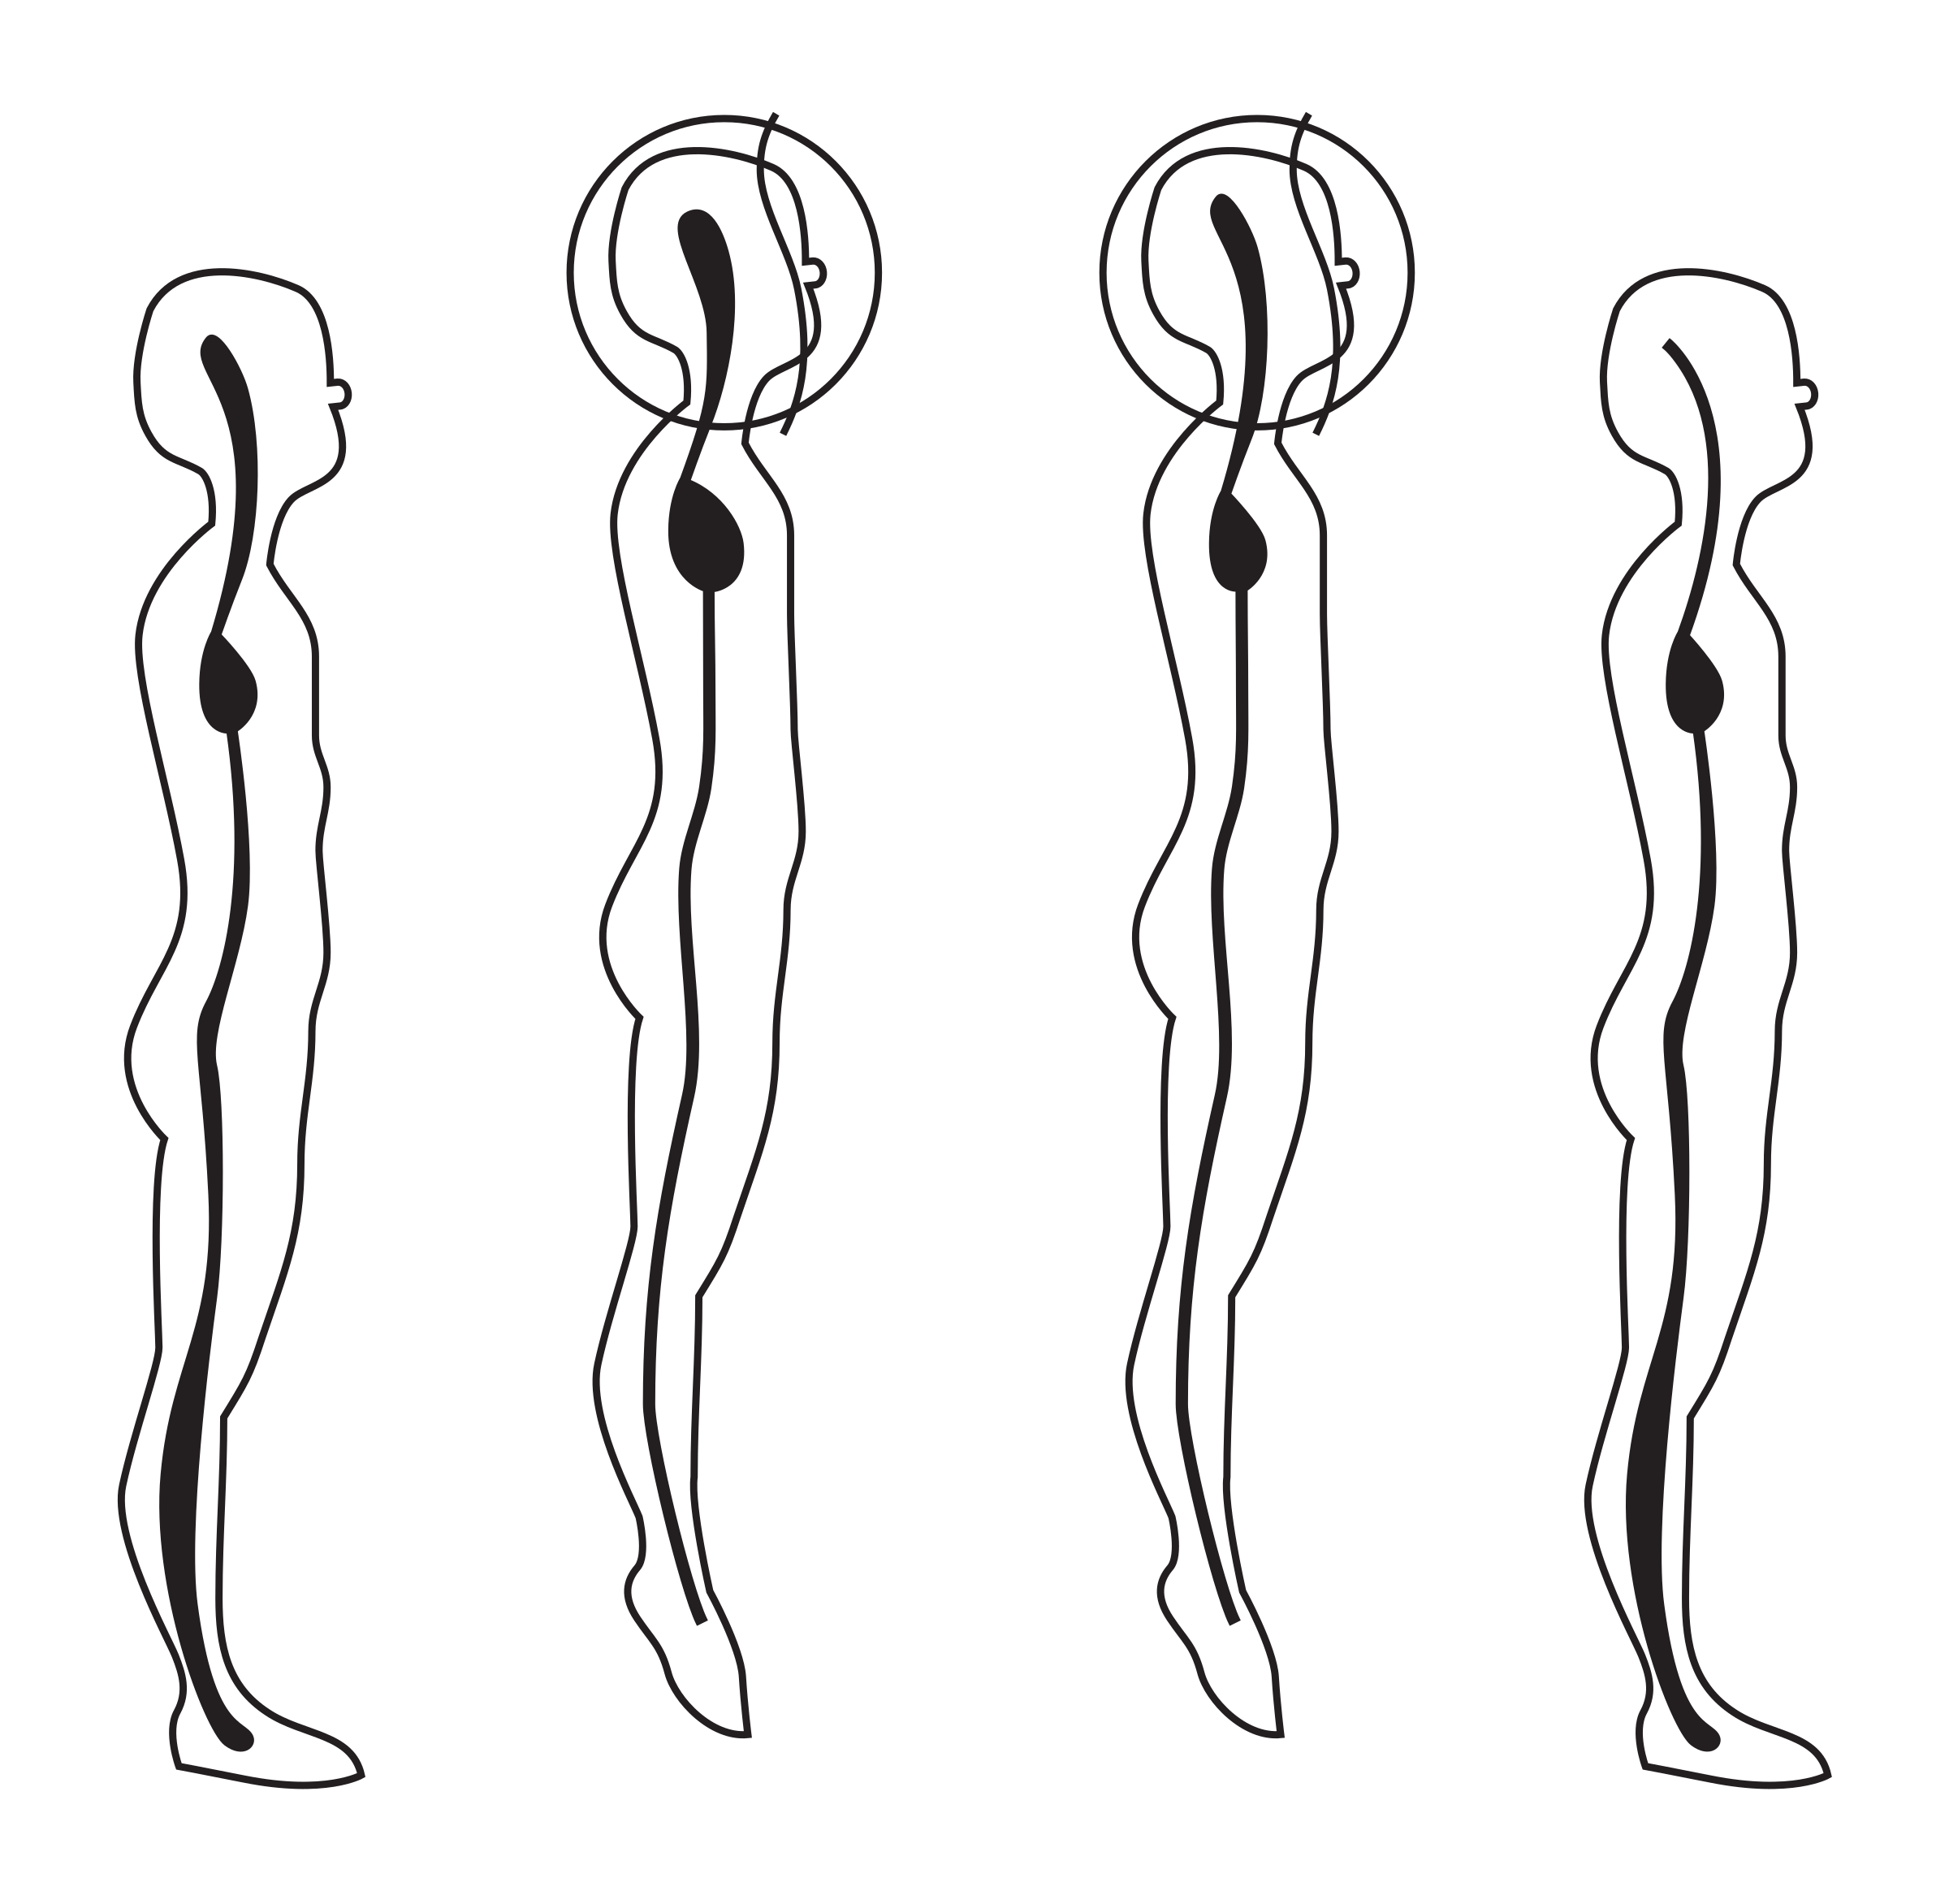 Body postures by rejon